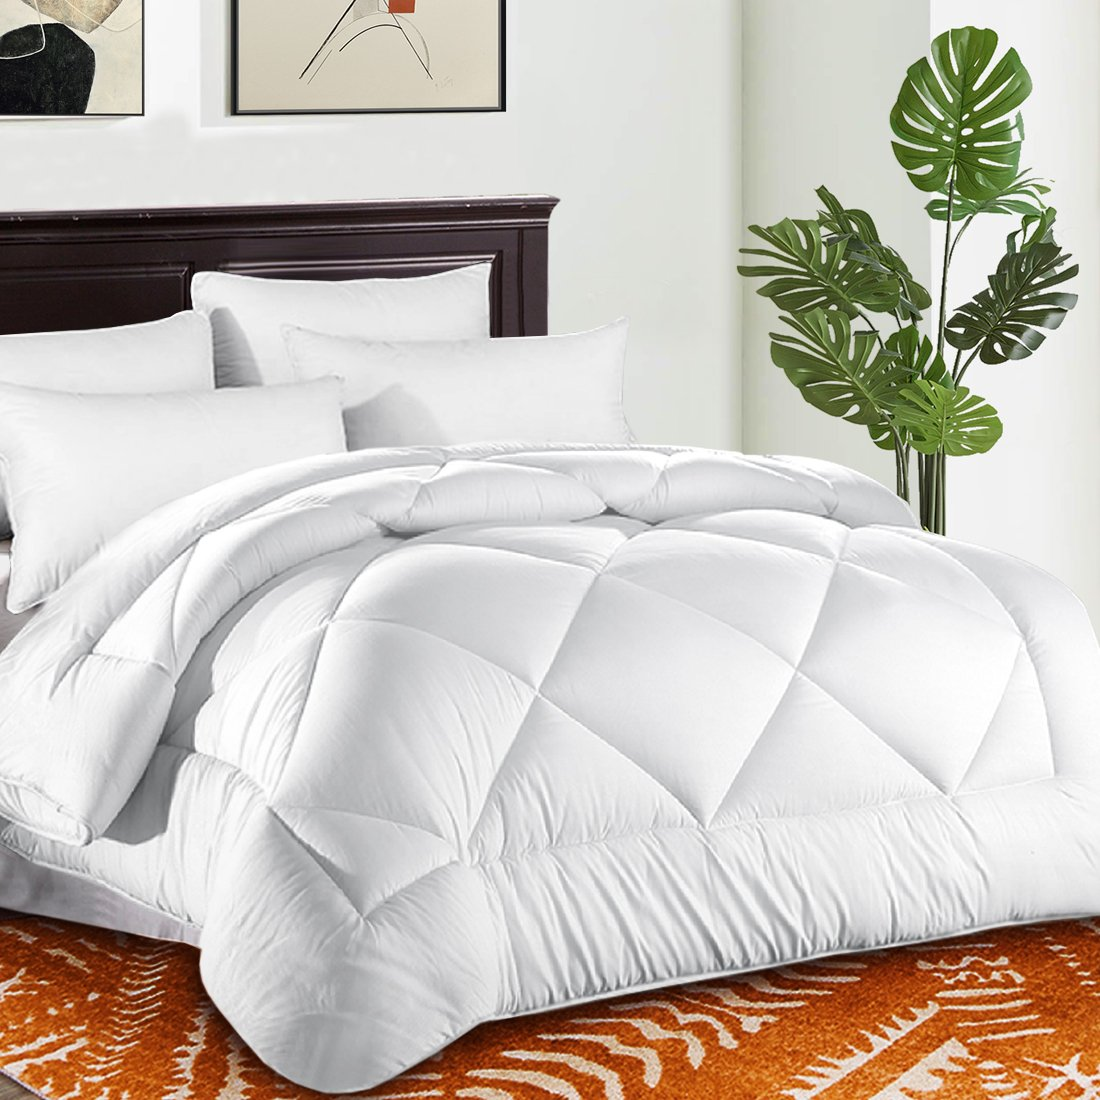 TEKAMON Queen Comforter Soft Quilted 3D Down Alternative Duvet Insert with Corner Tabs 2200 Series,Luxury Fluffy Reversible Hotel Collection,Hypoallergenic for All Season, White, 88'' x 88''